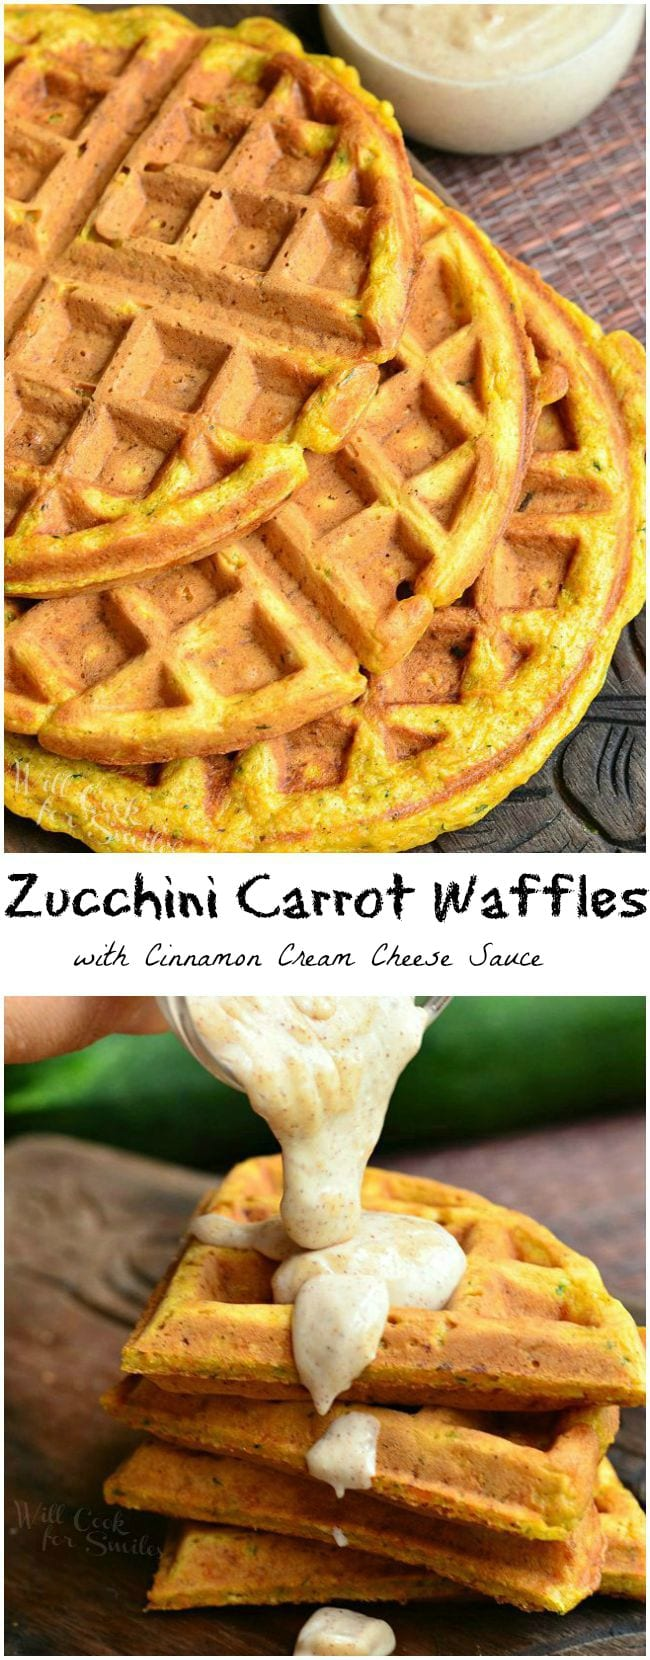 Zucchini Carrot Waffles with Cinnamon Cream Cheese Sauce